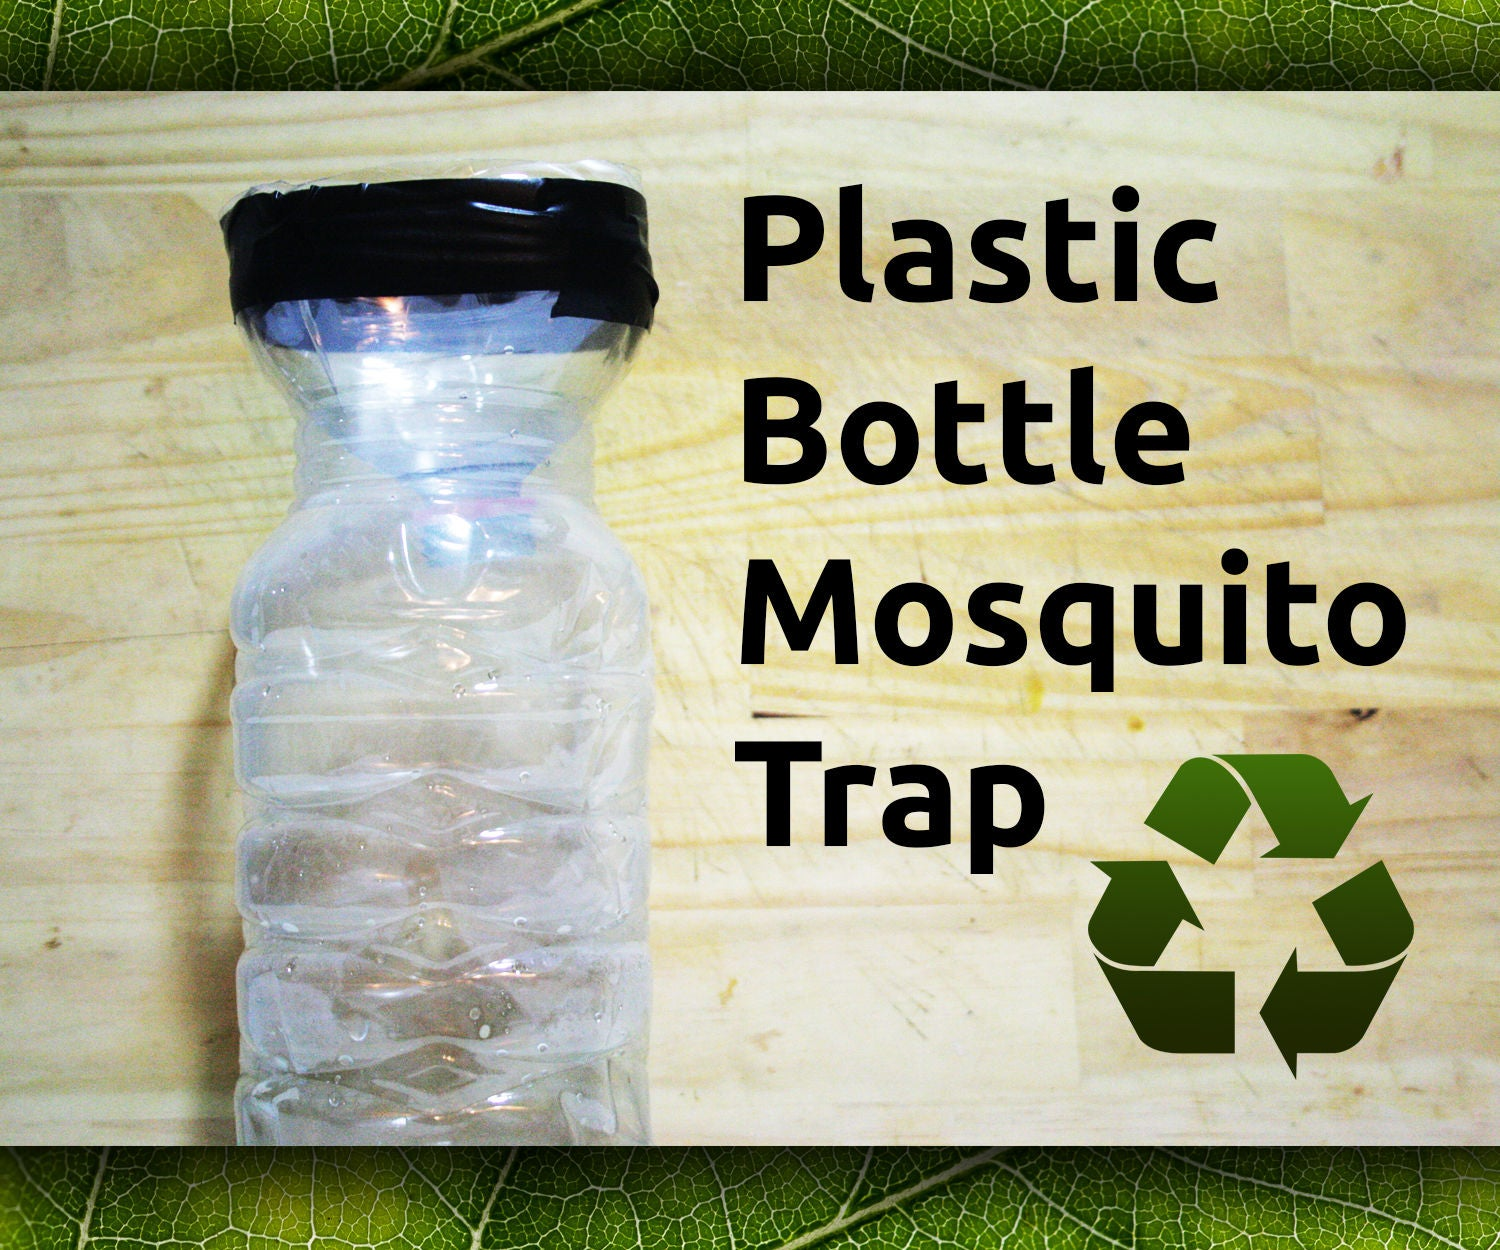 Plastic Bottle Mosquito Trap